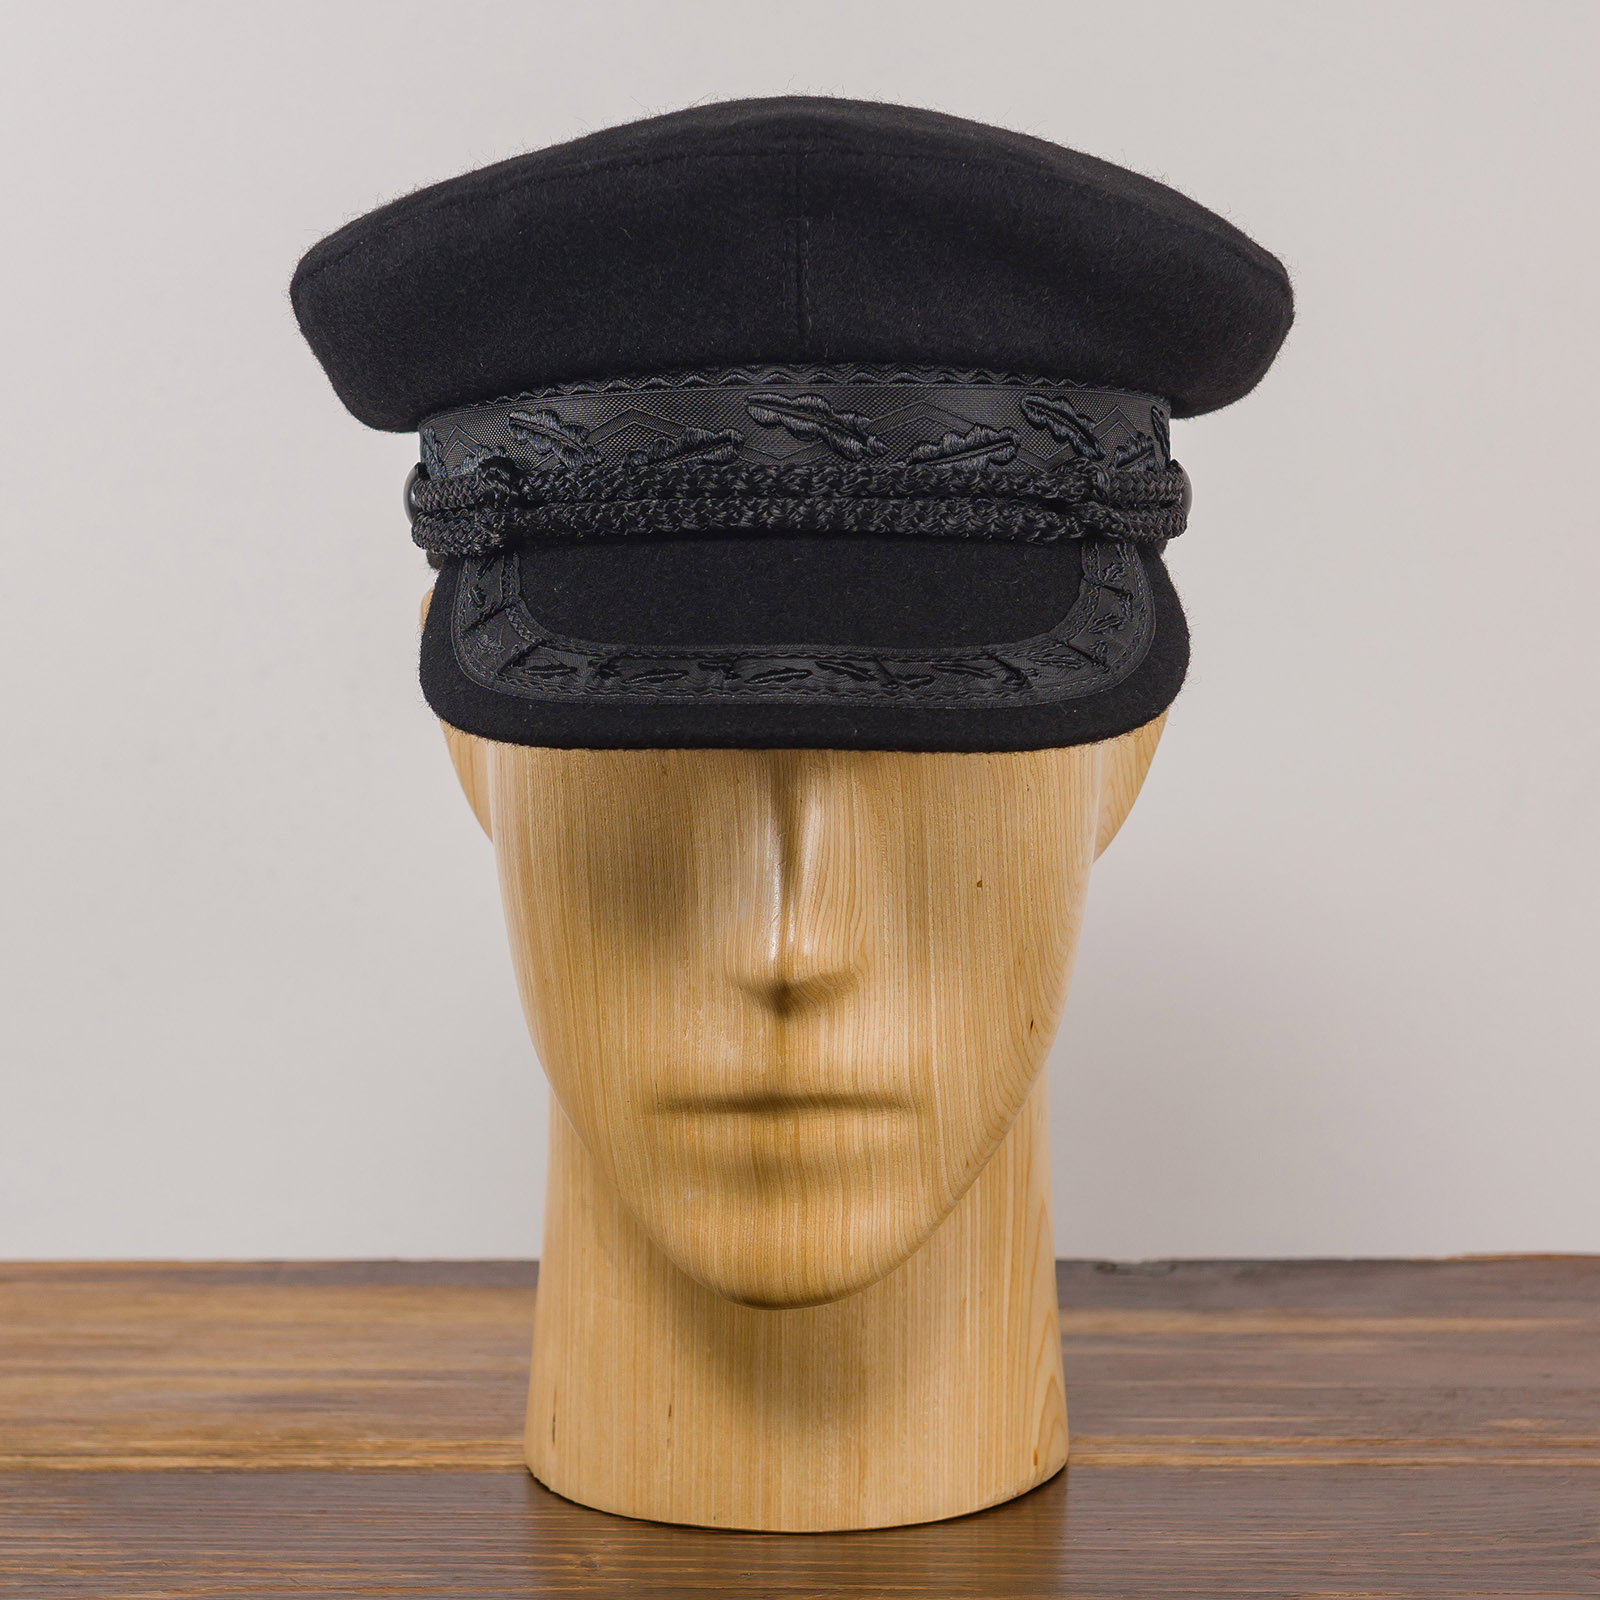 Wool cloth traditional Polish lacquered peaked cap cabbie chauffeur train conductor coachman railway gatekeeper cabby hat